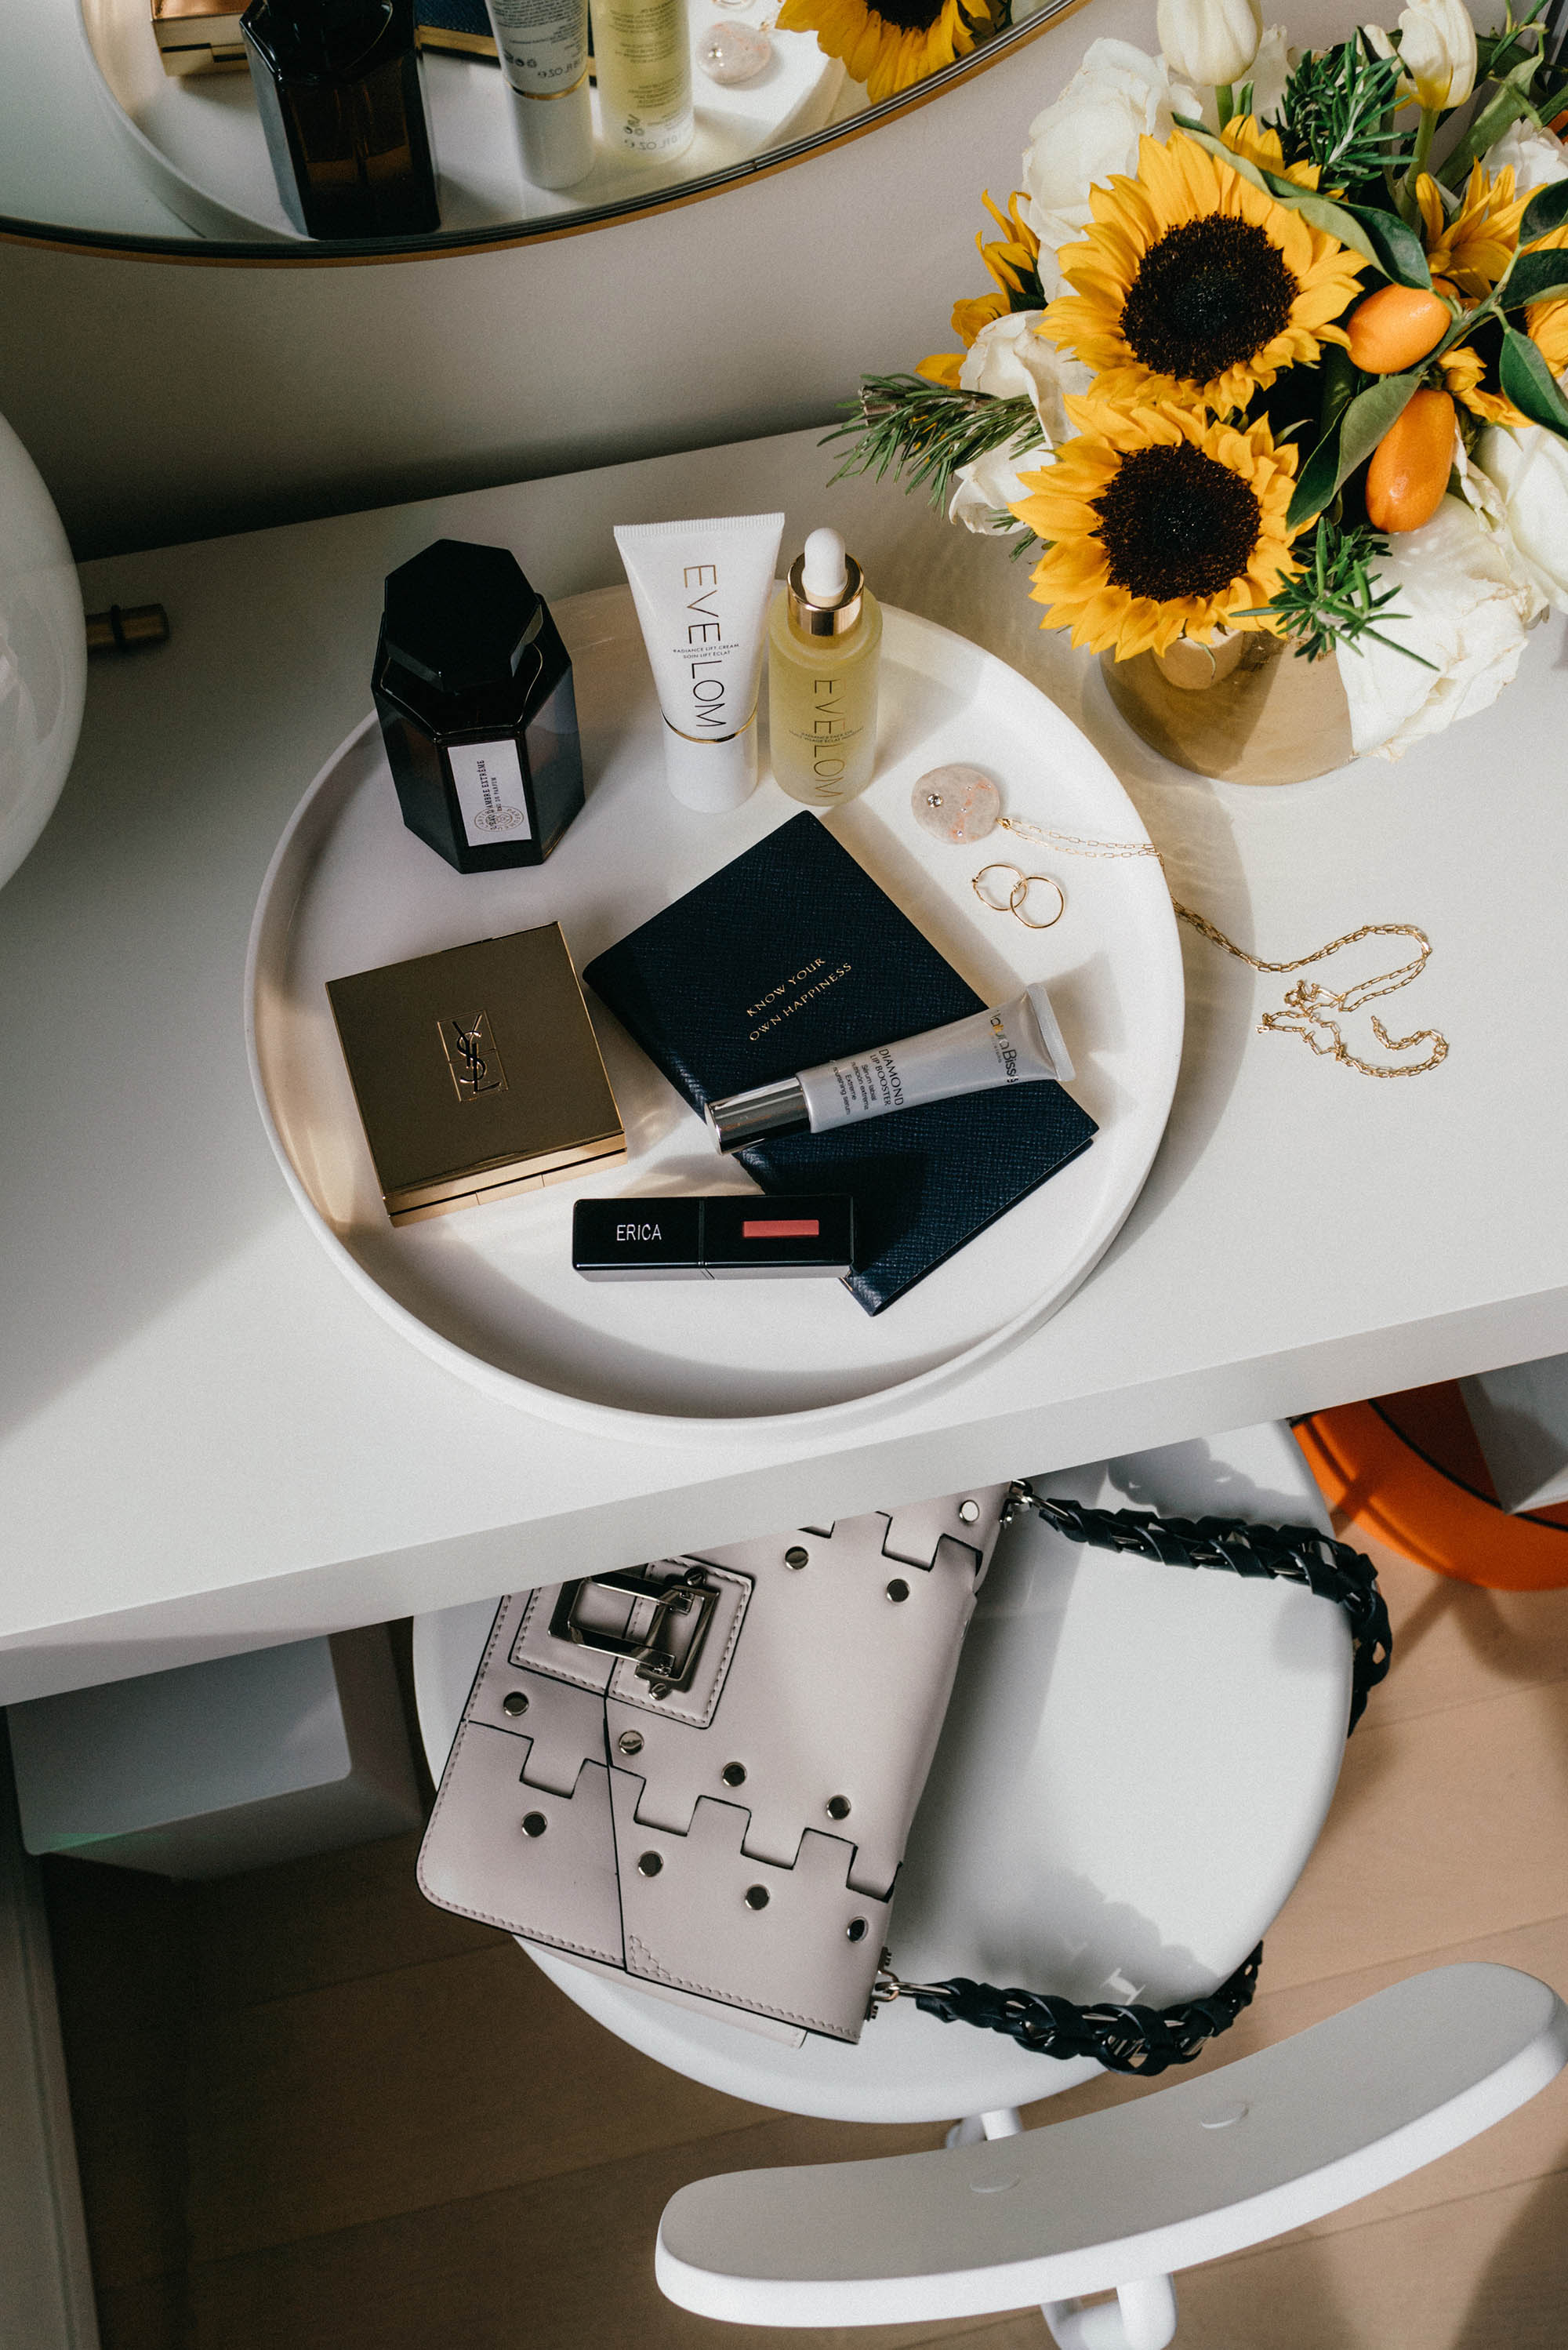 L'Artisan Parfumeur Fragrance ,  Eve Lom Beauty ,  YSL Beauty Cushion Compact ,  YSL Beauty Lip Stain ,  Natura Bisse Lip Booster ,  Smythson Notebook